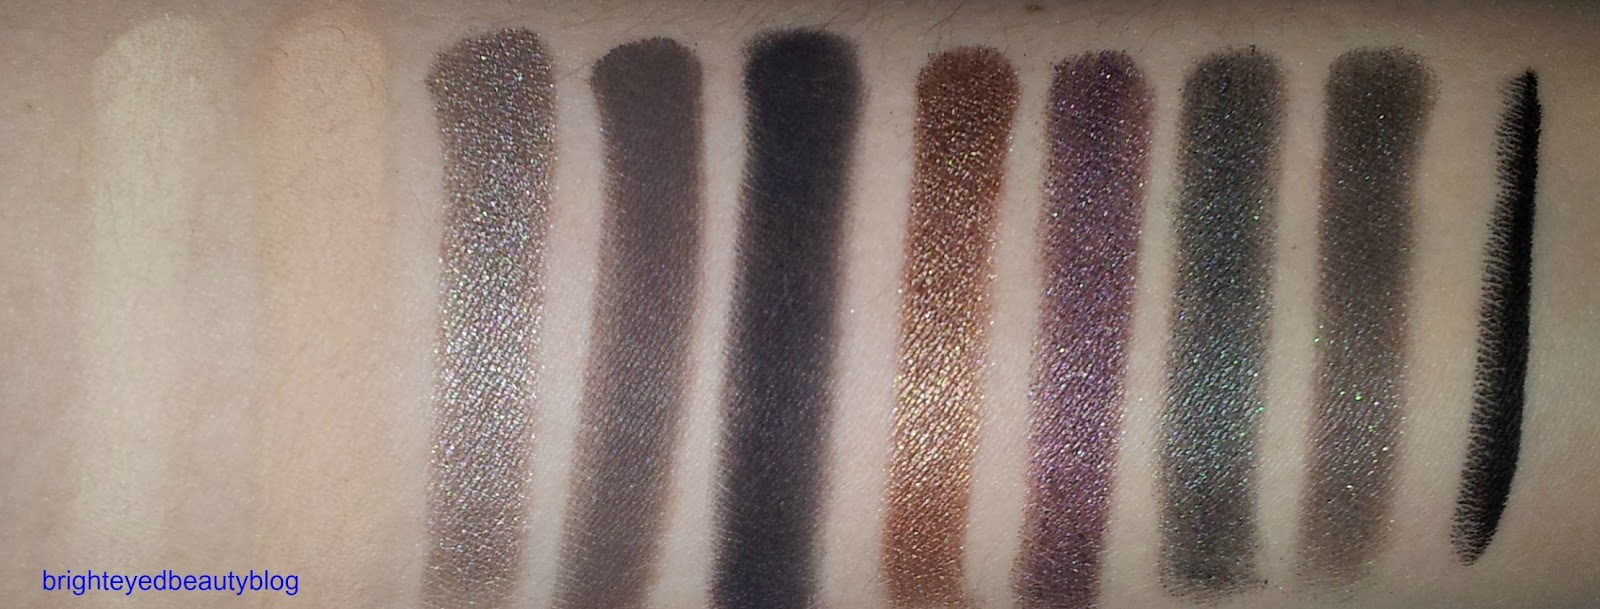 Smoked Eyeshadow Palette by Urban Decay #4